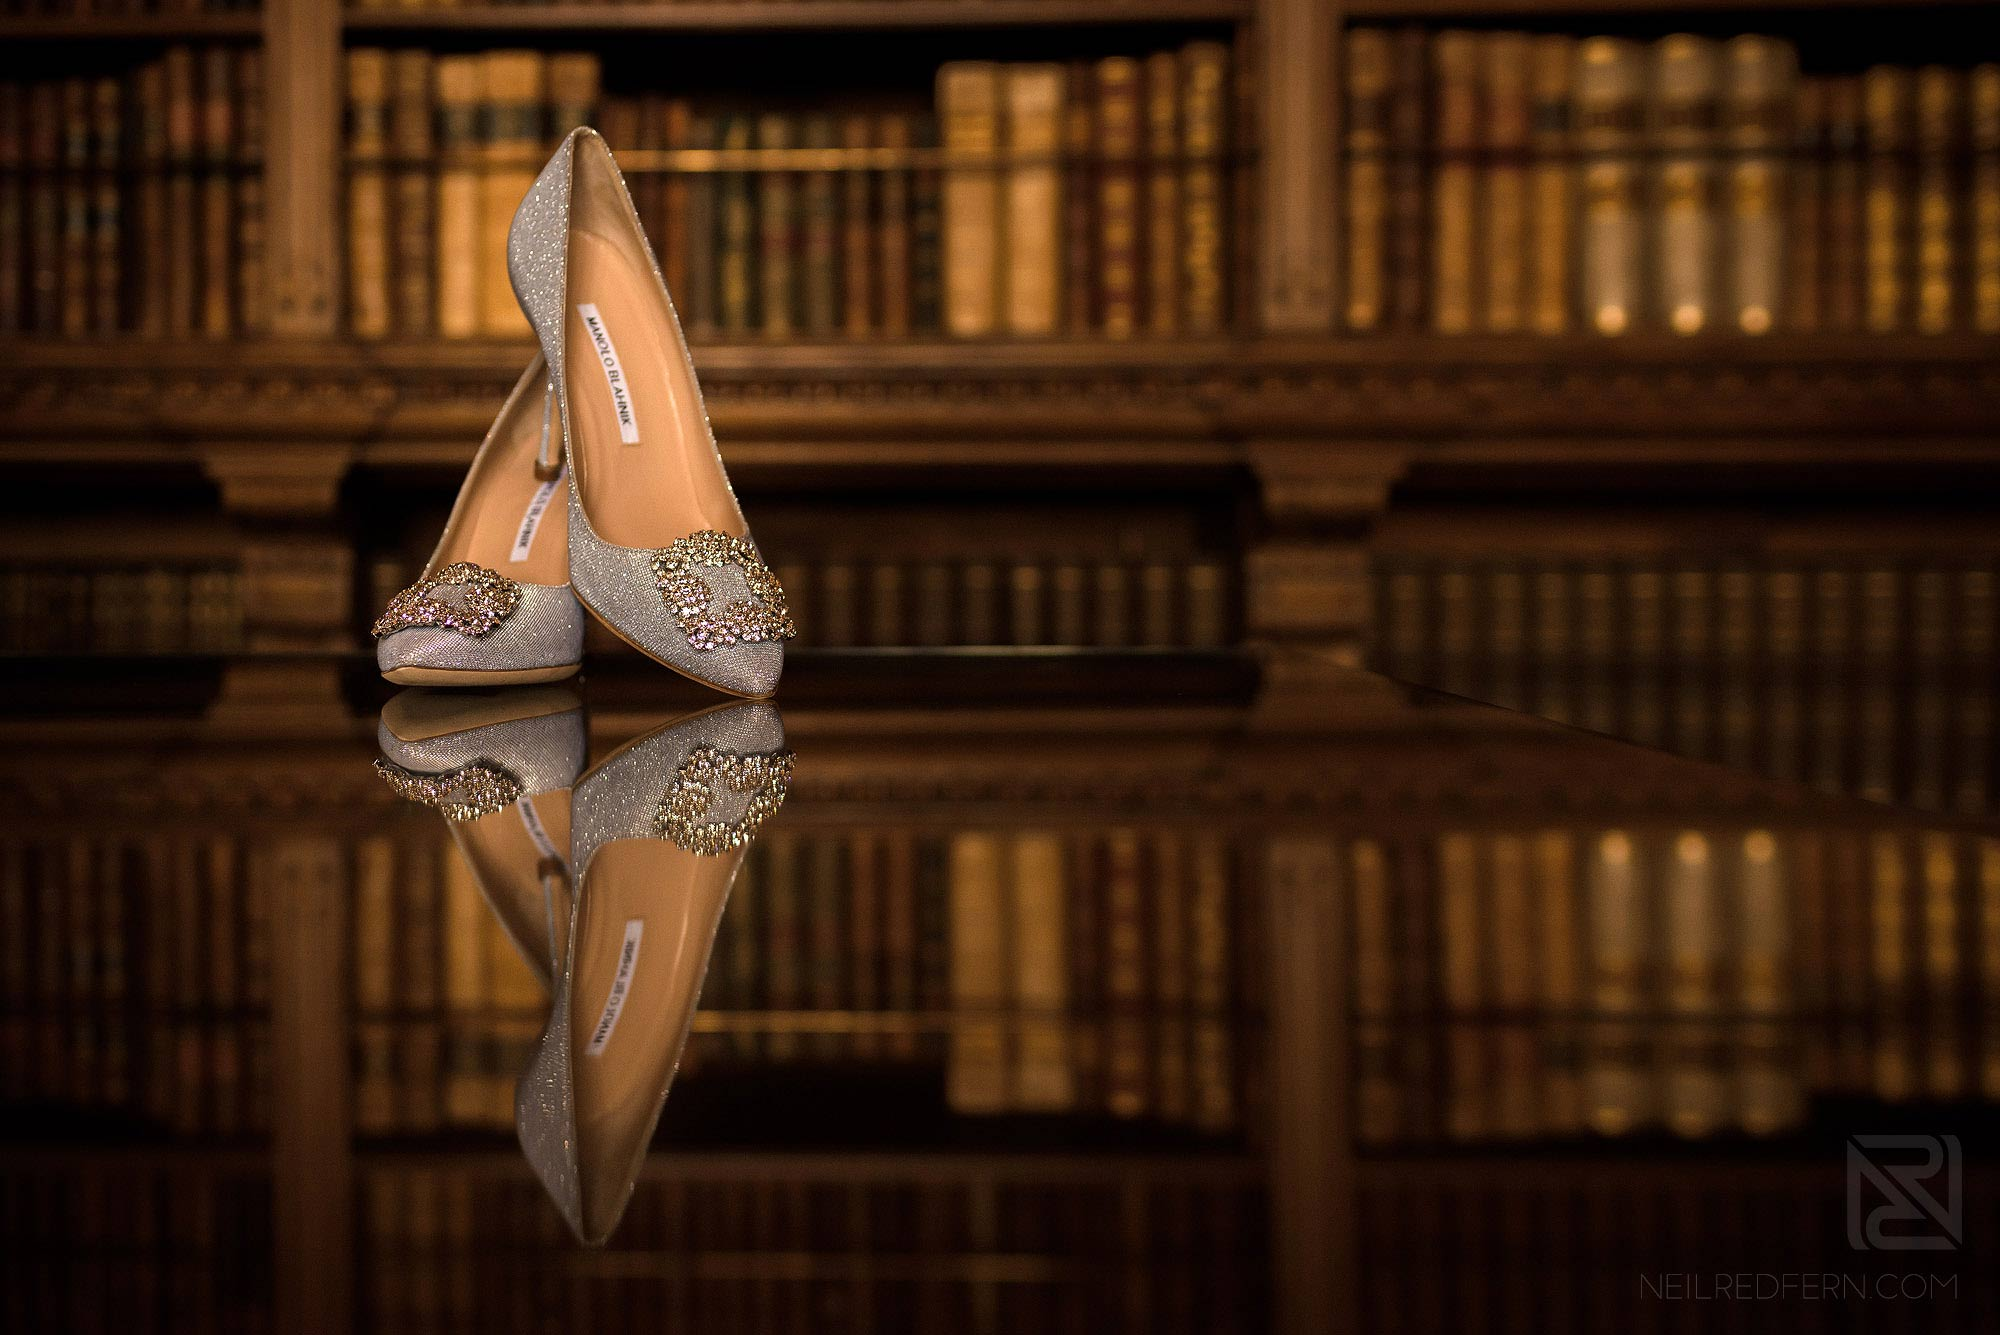 photograph of bride's wedding shoes